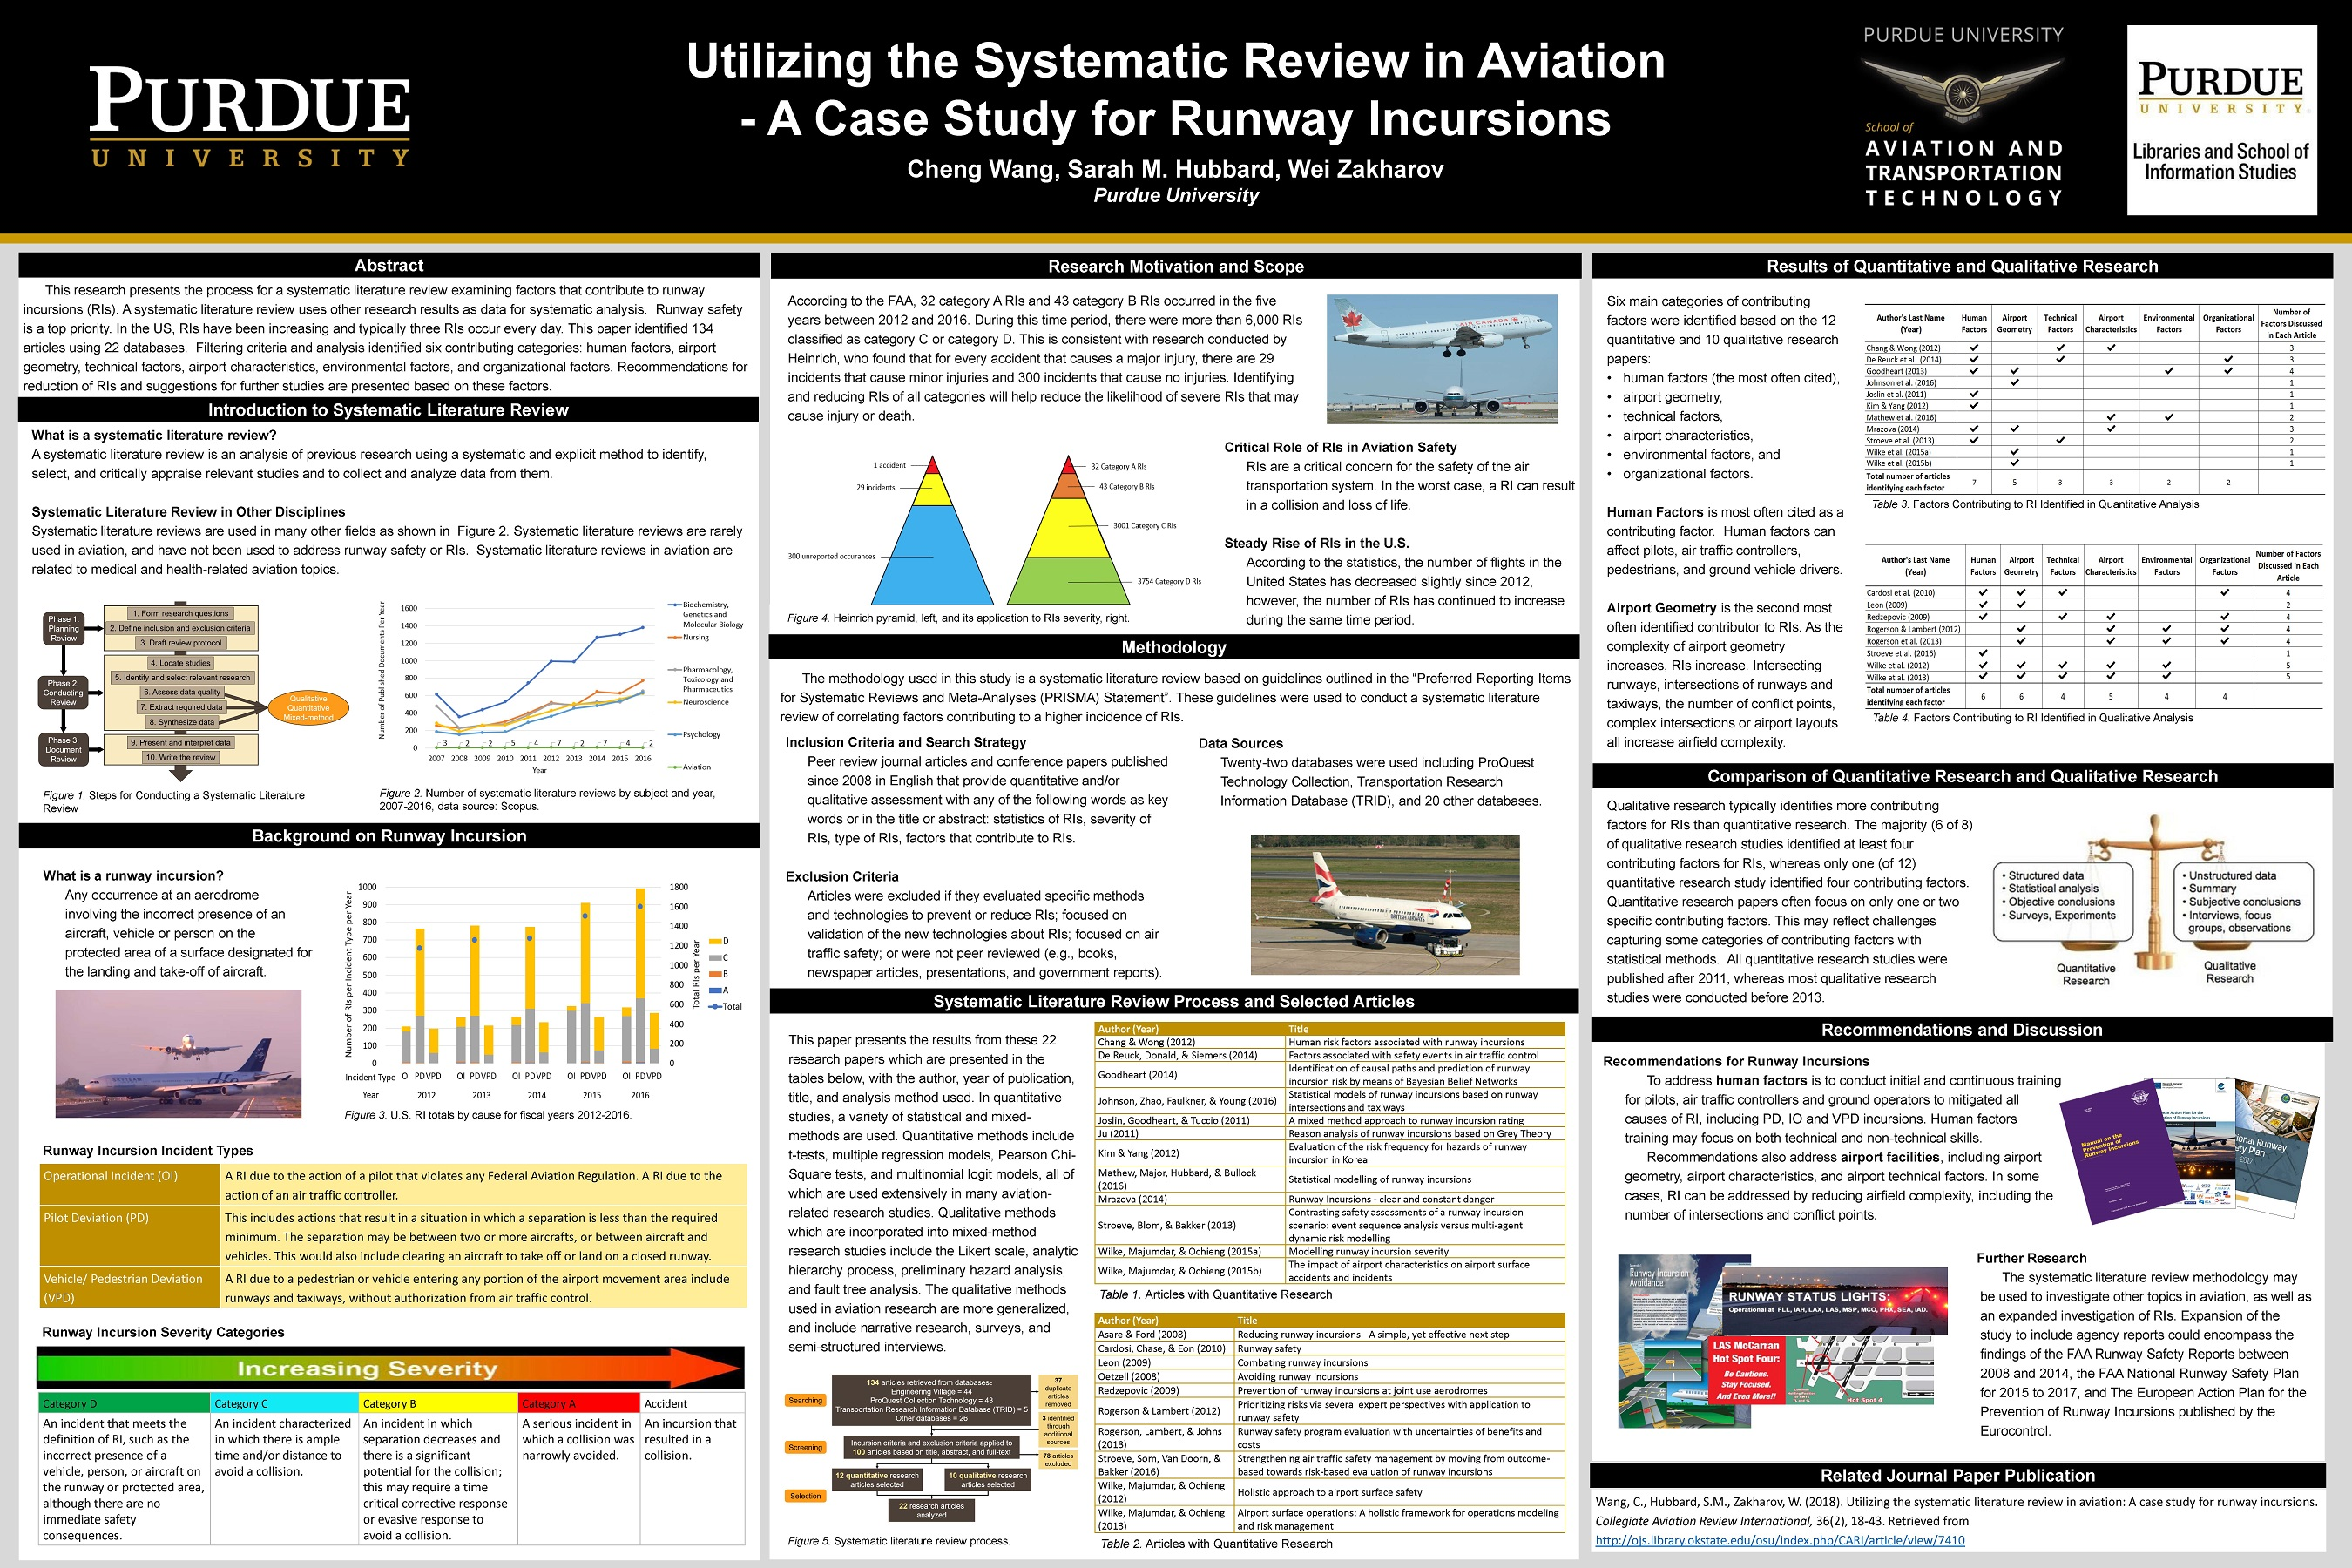 Utilizing the Systematic Review in Aviation - A Case Study for Runway Incursions by Cheng Wang, Sarah M. Hubbard, and Wei Zakharov, Purdue University